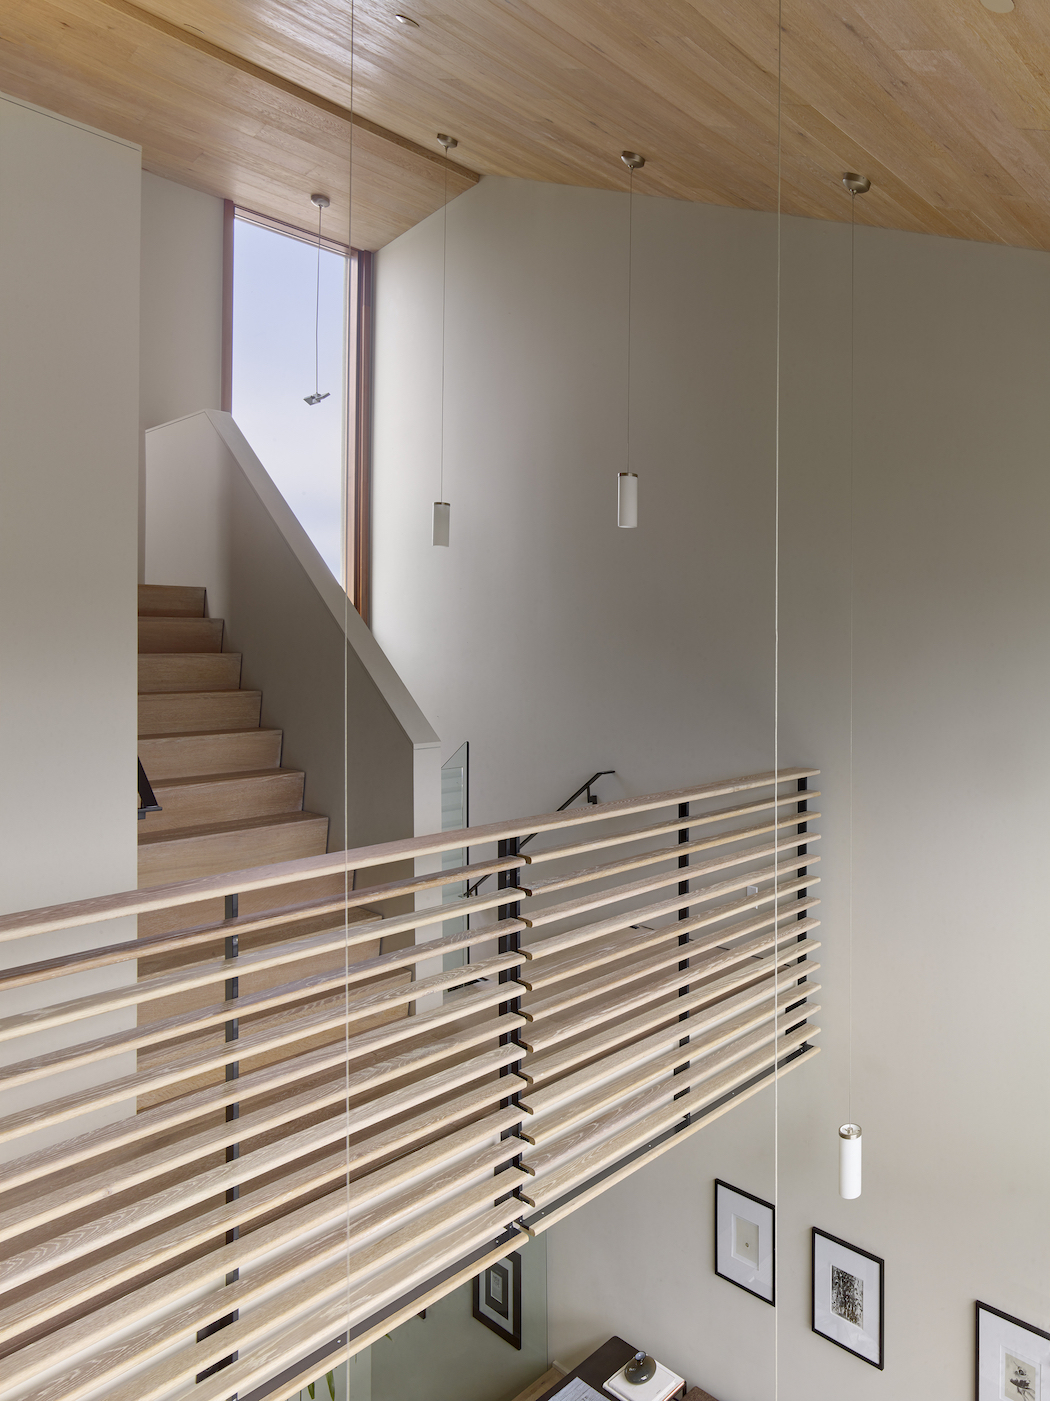 Albion Street Residences - Kennerly Architecture & Planning 7